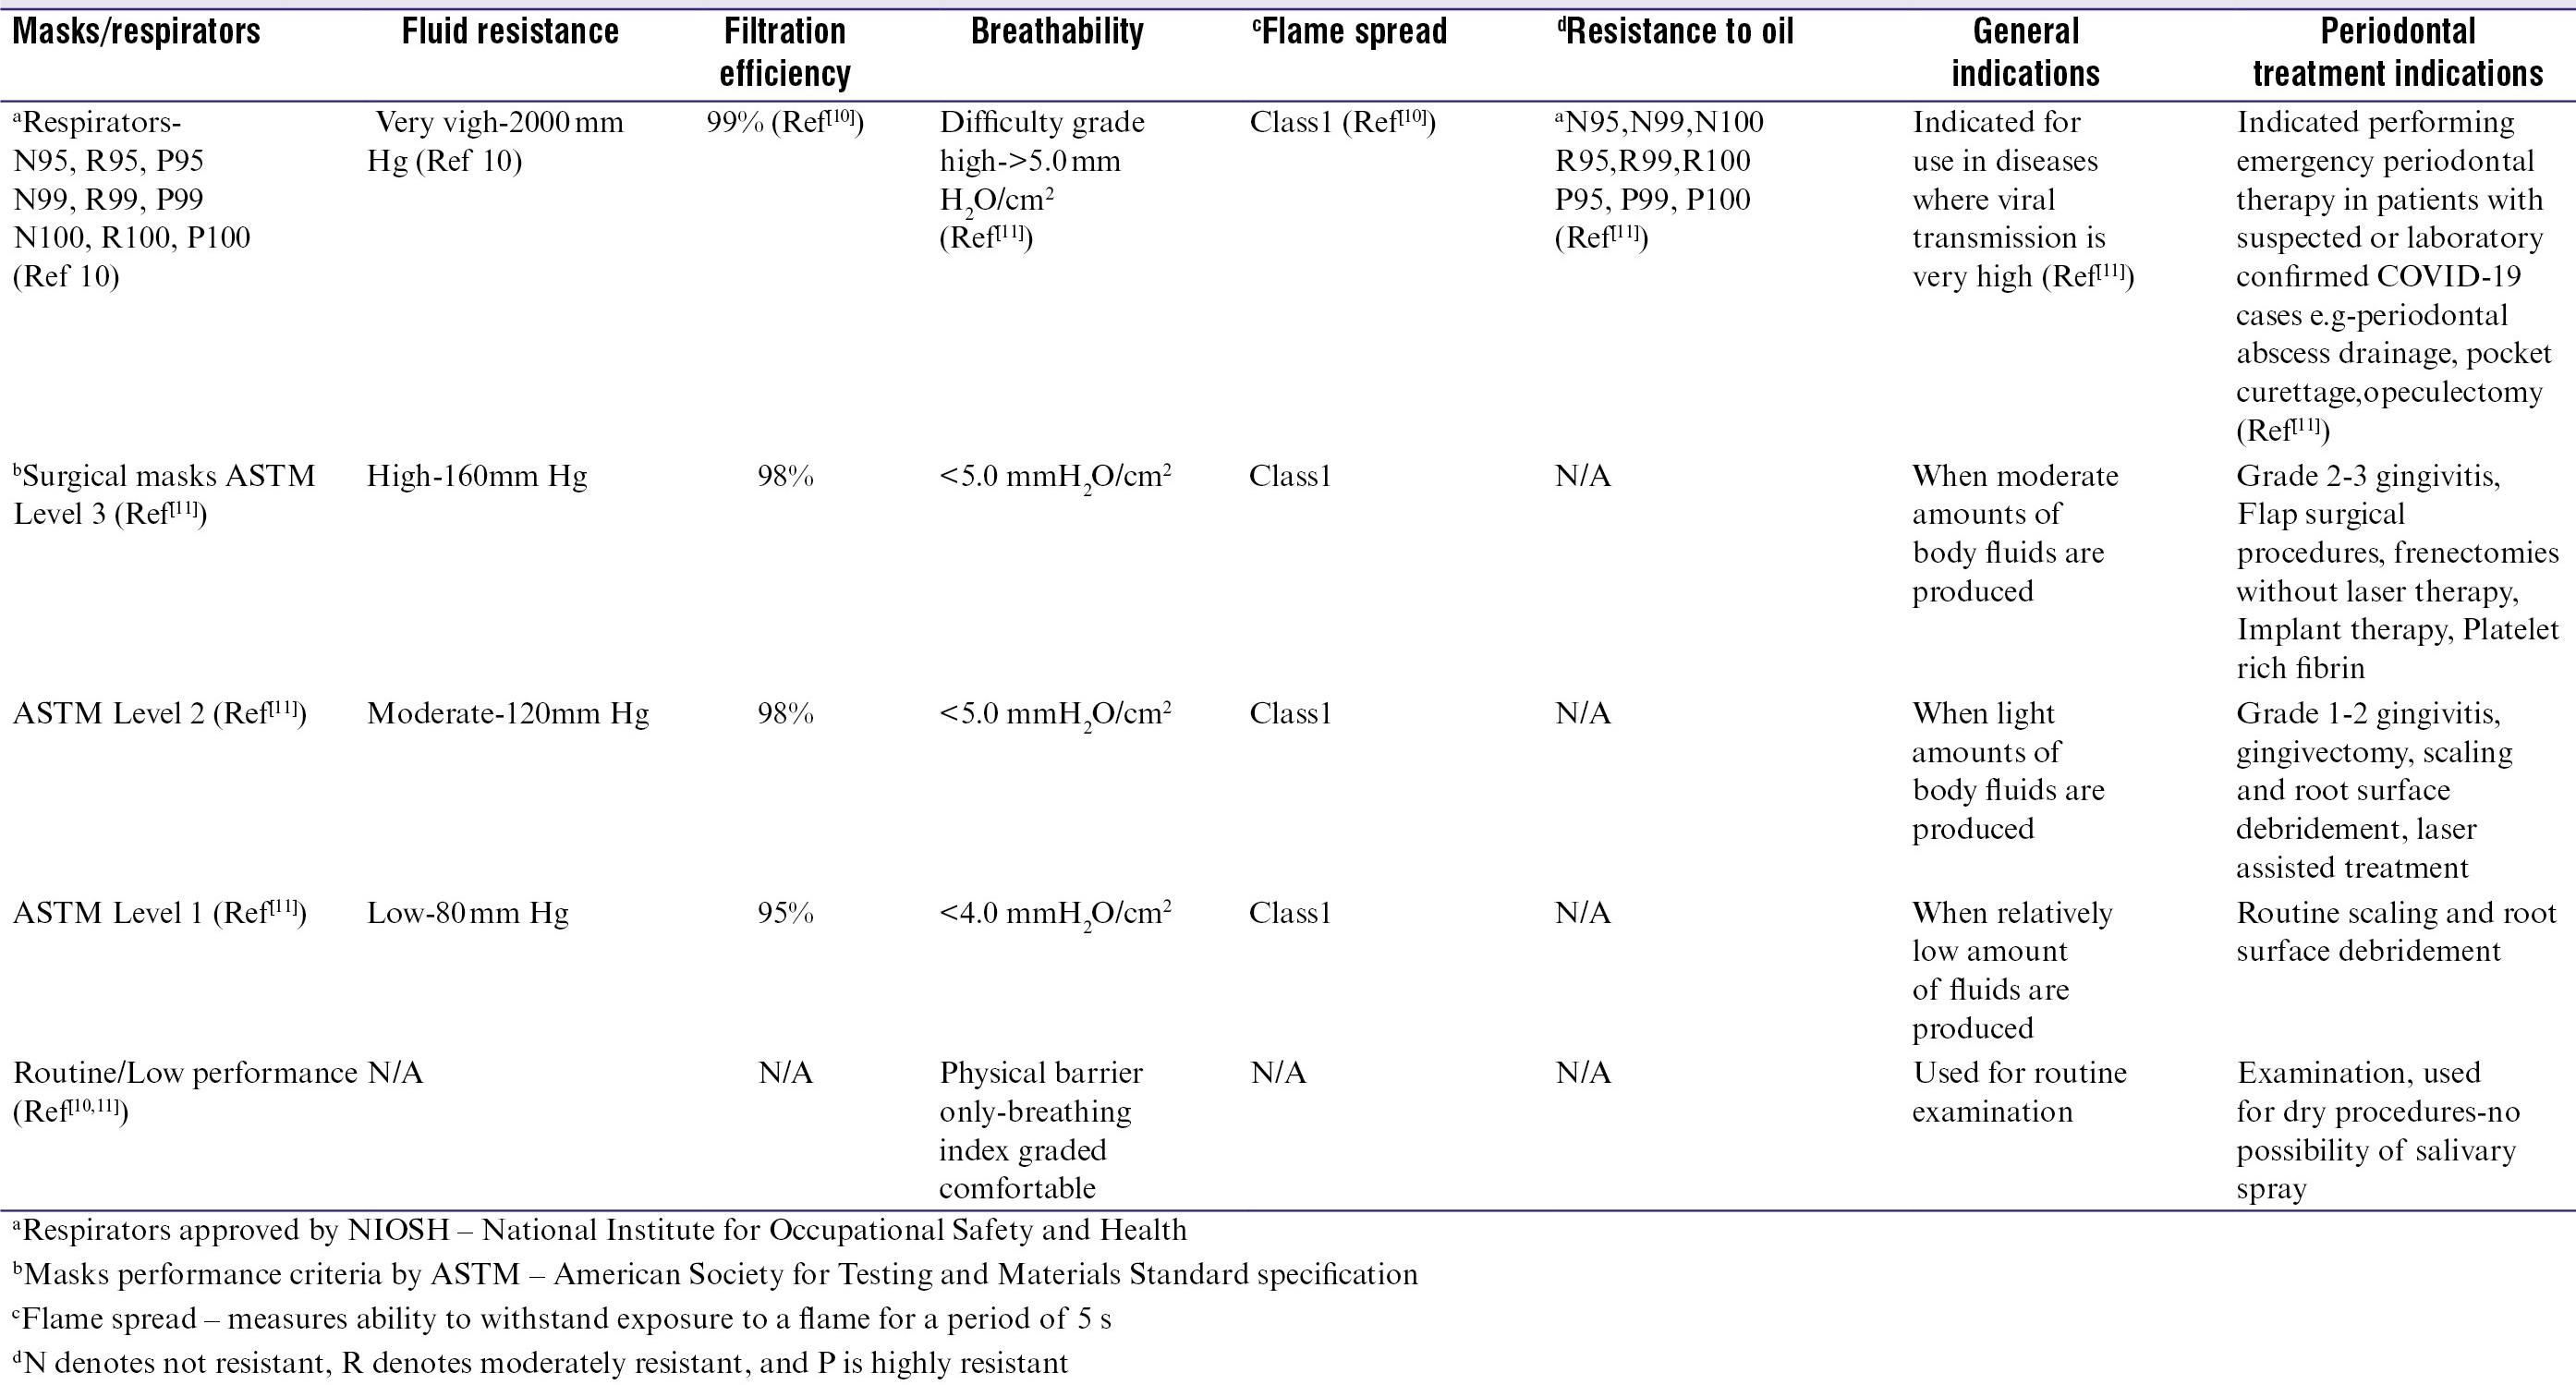 Table 1: Mask/respirator performance indices